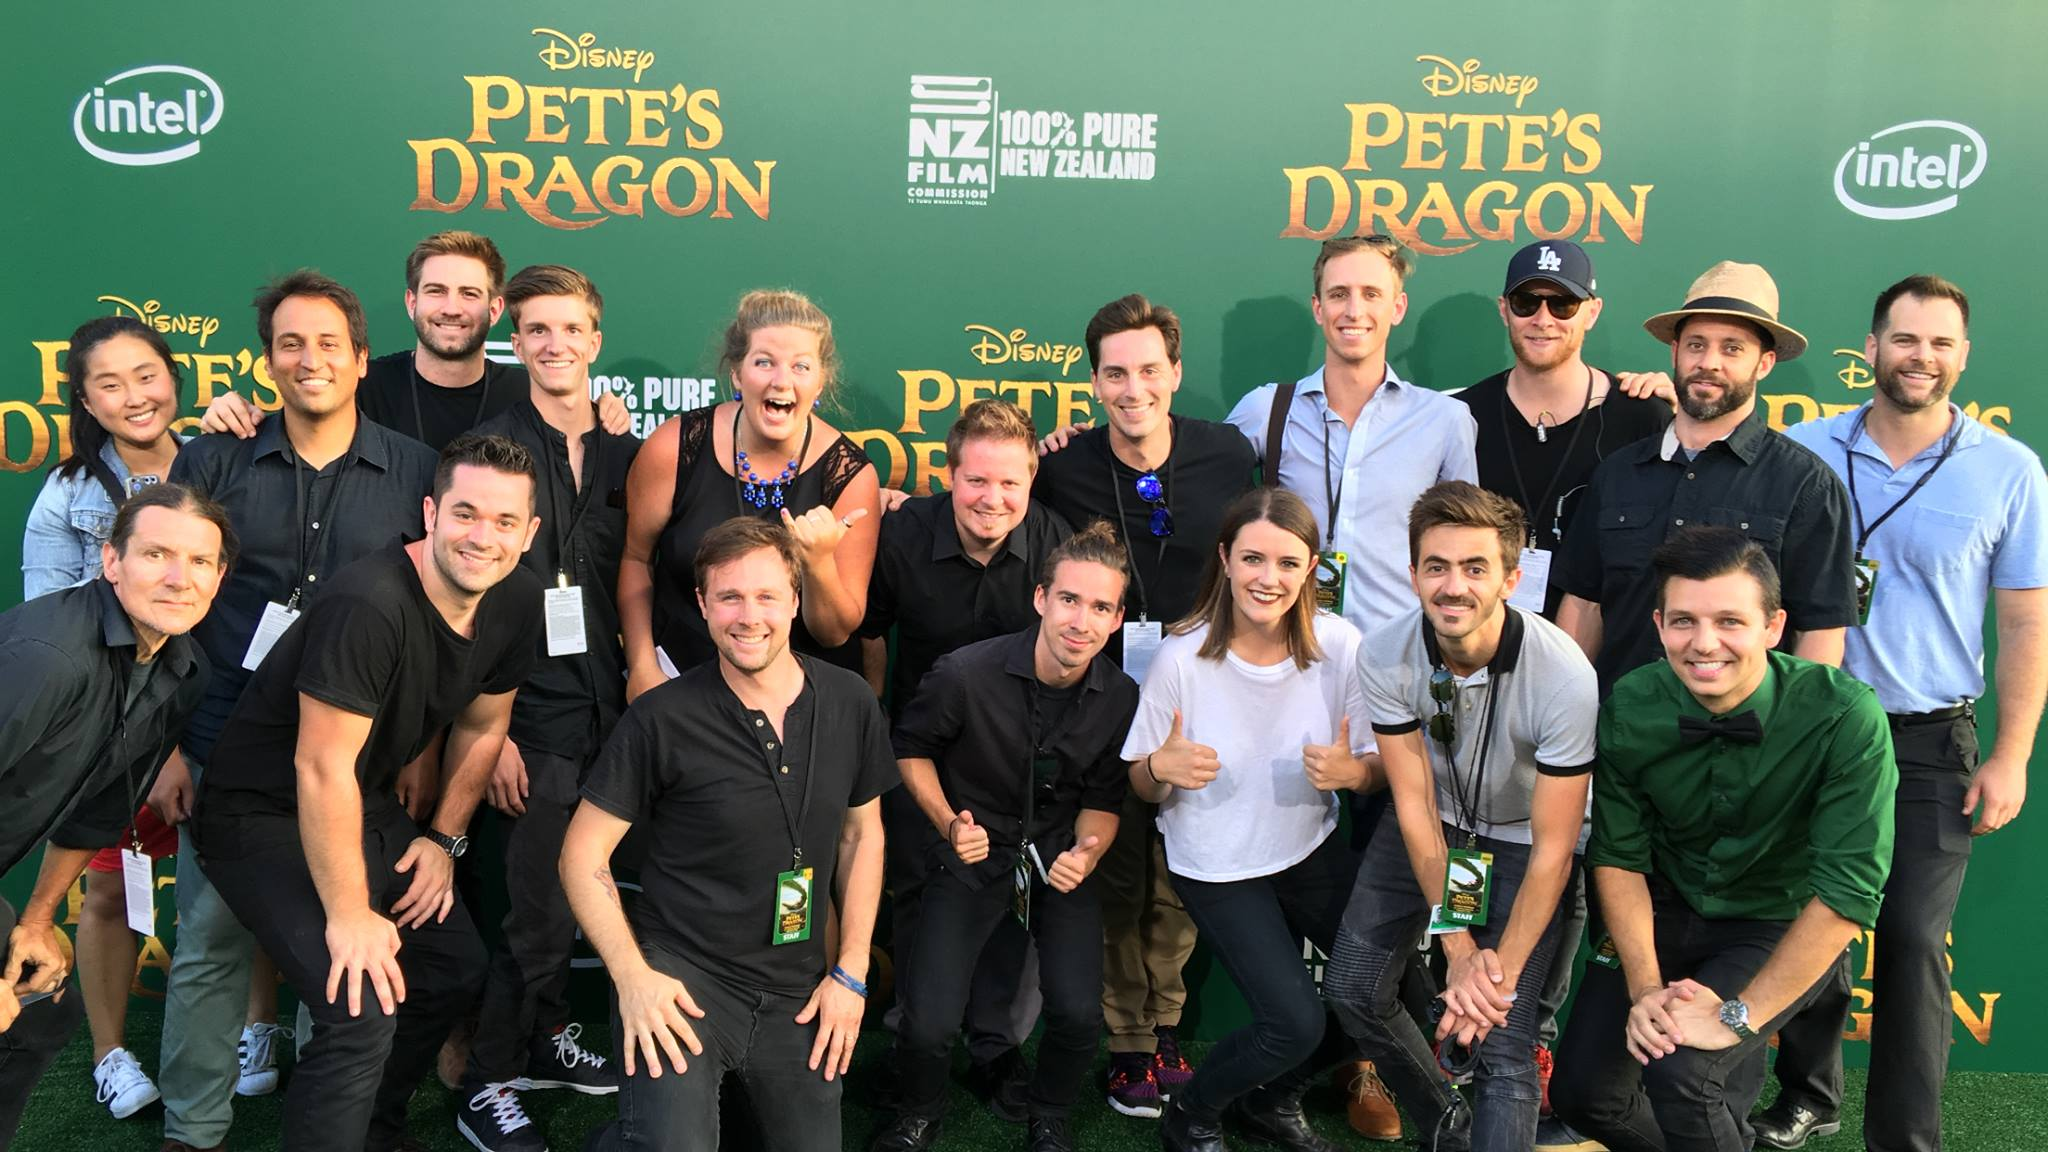 Pete's Dragon World Premiere